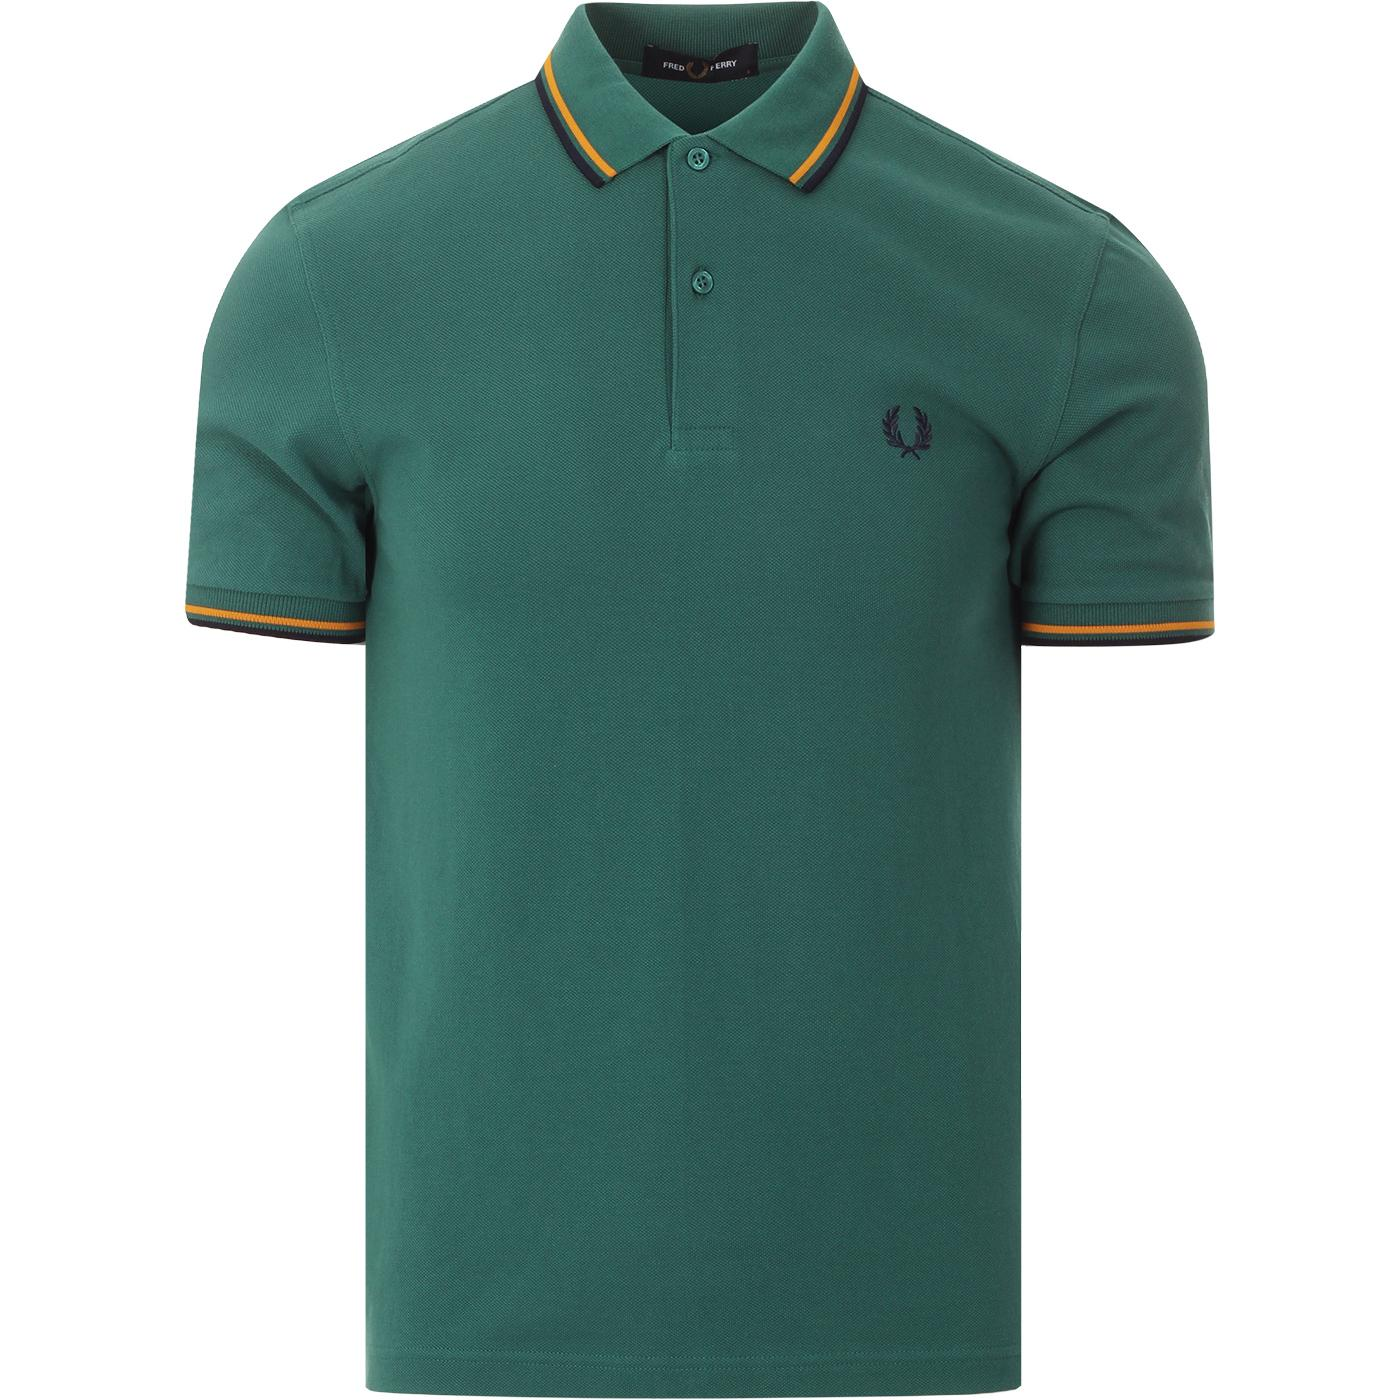 FRED PERRY M3600 Twin Tipped Mod Polo Shirt (BG)